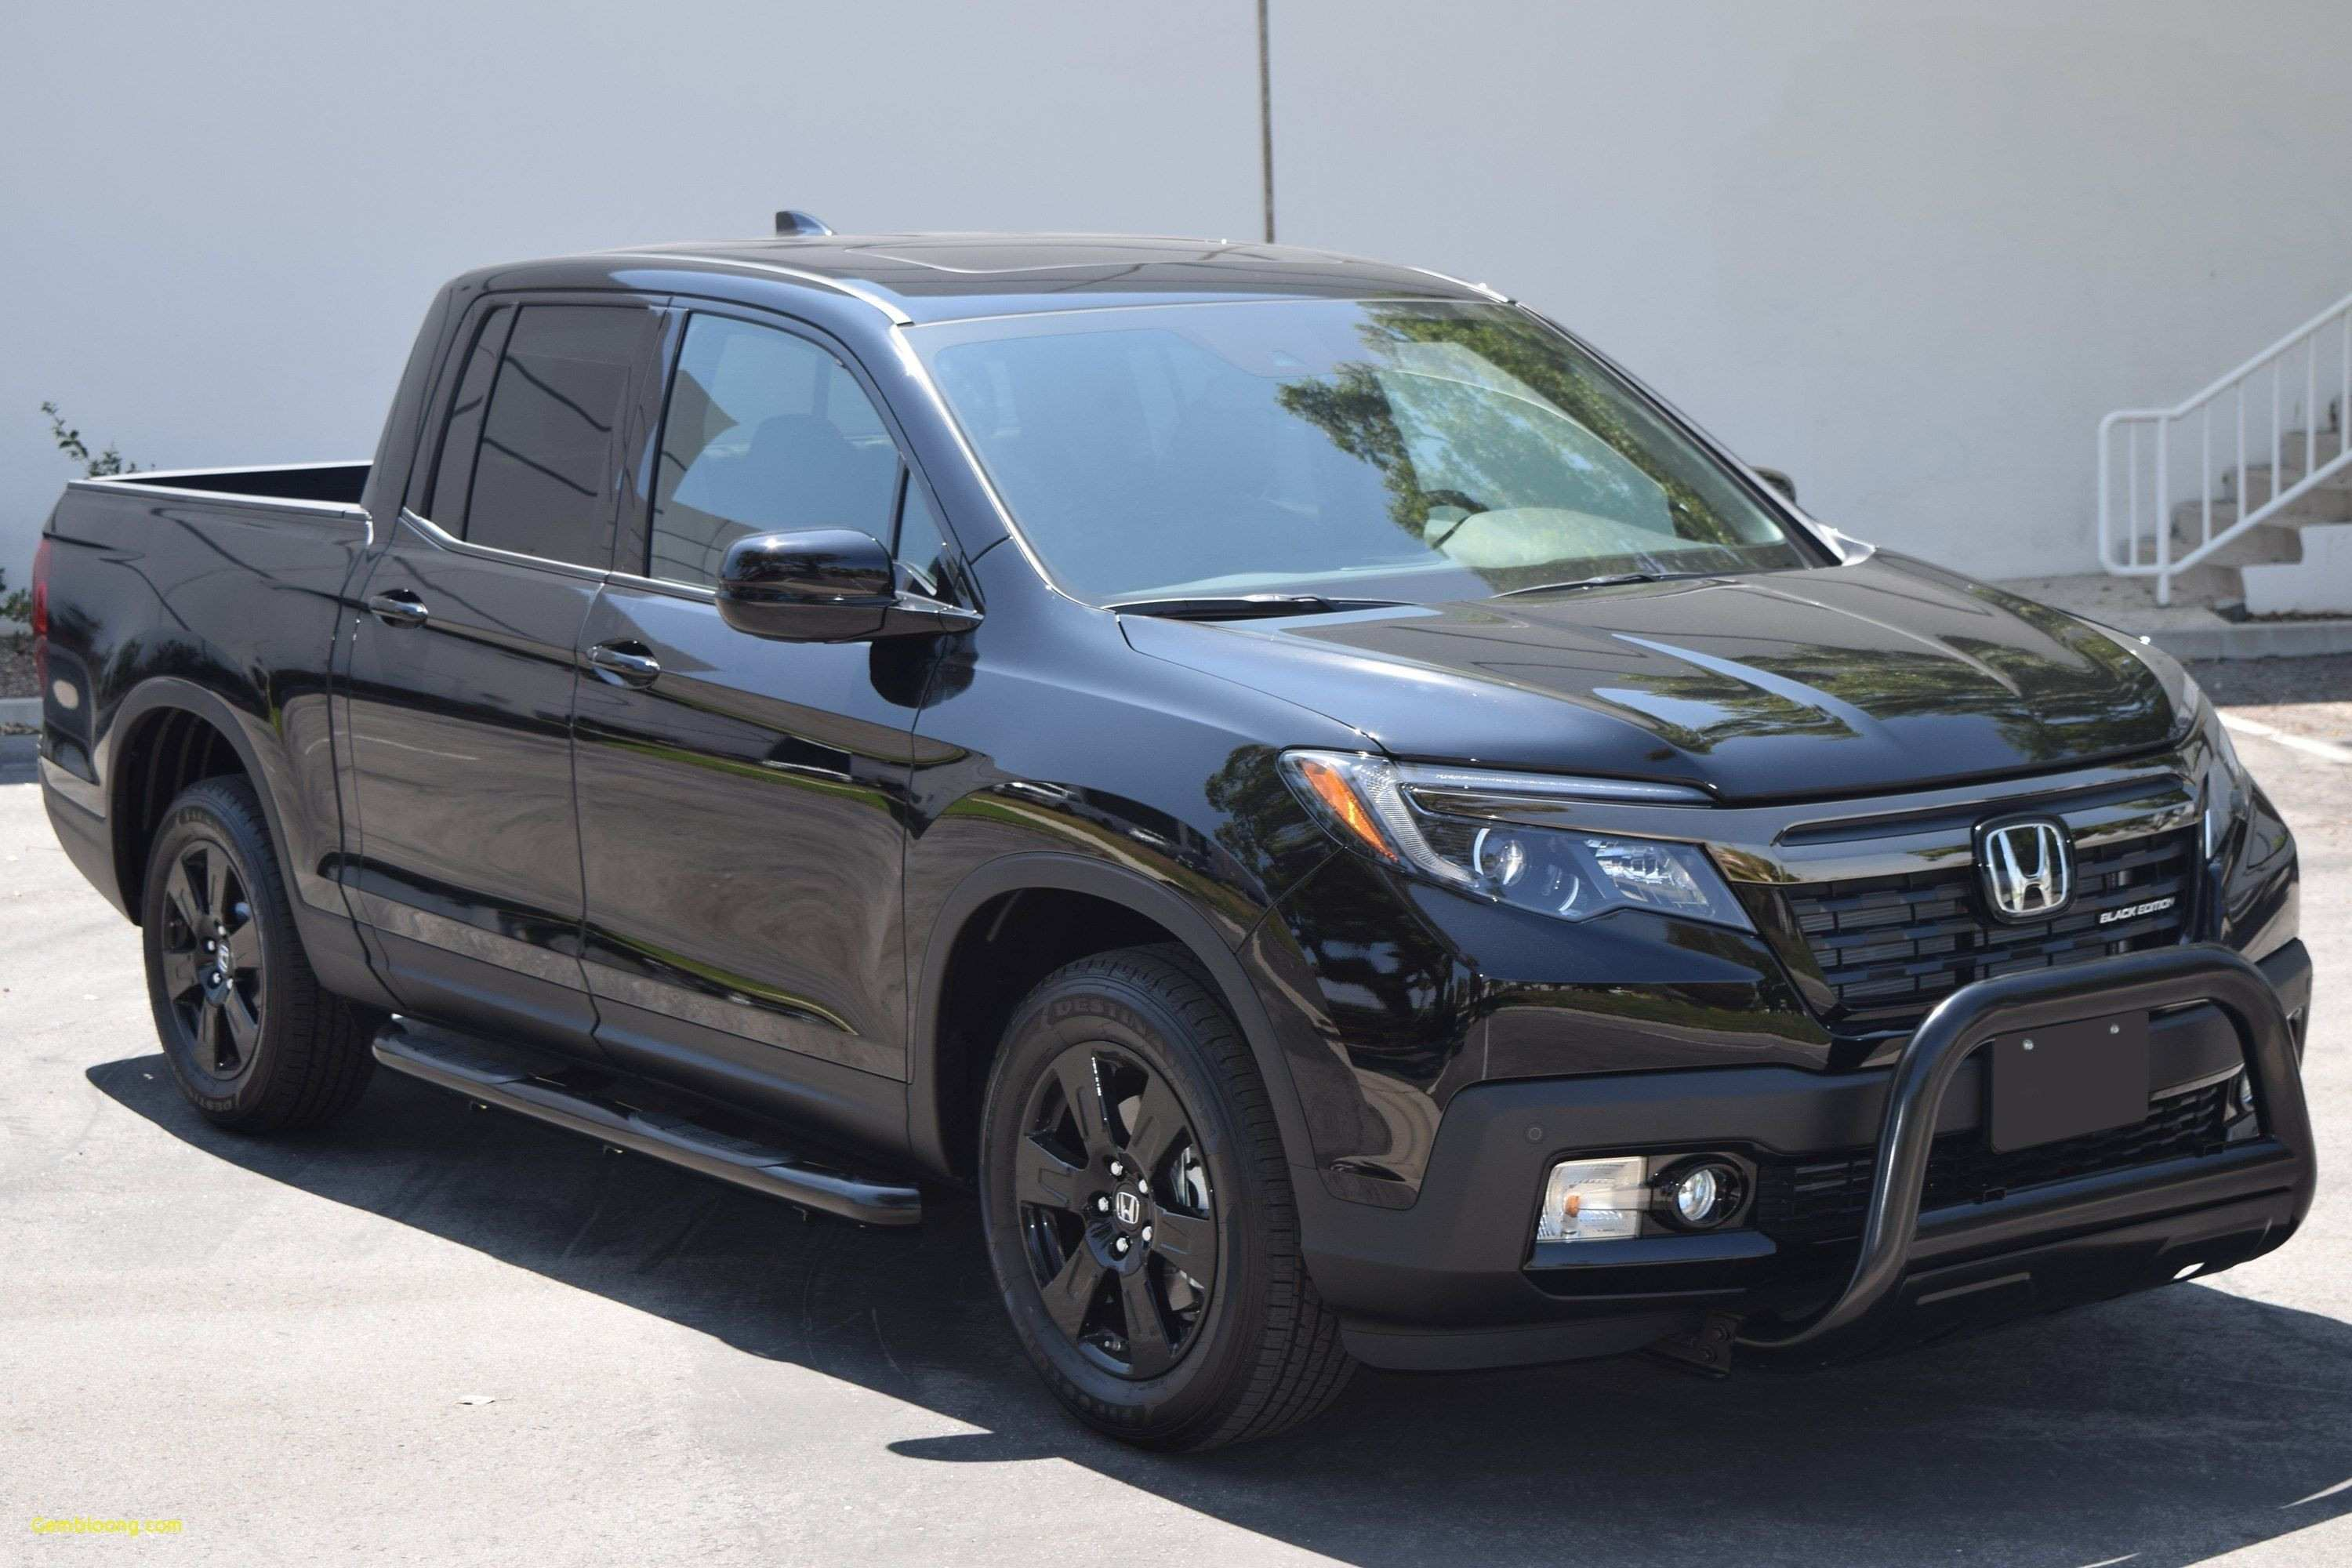 86 New 2020 Honda Ridgeline Pickup Truck Review And Release Date